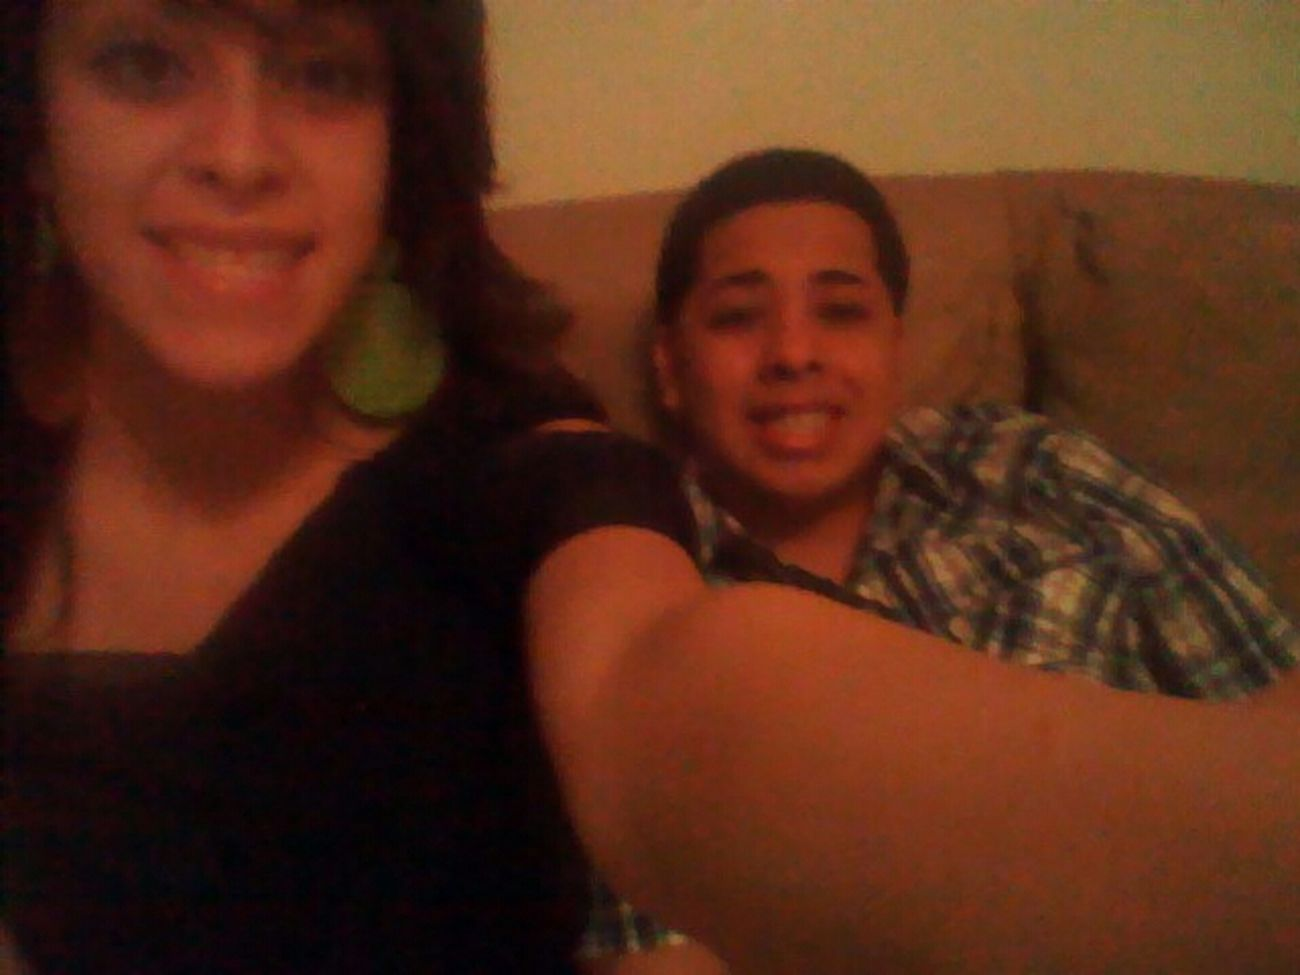 Saturday w/ my boyfriend <3